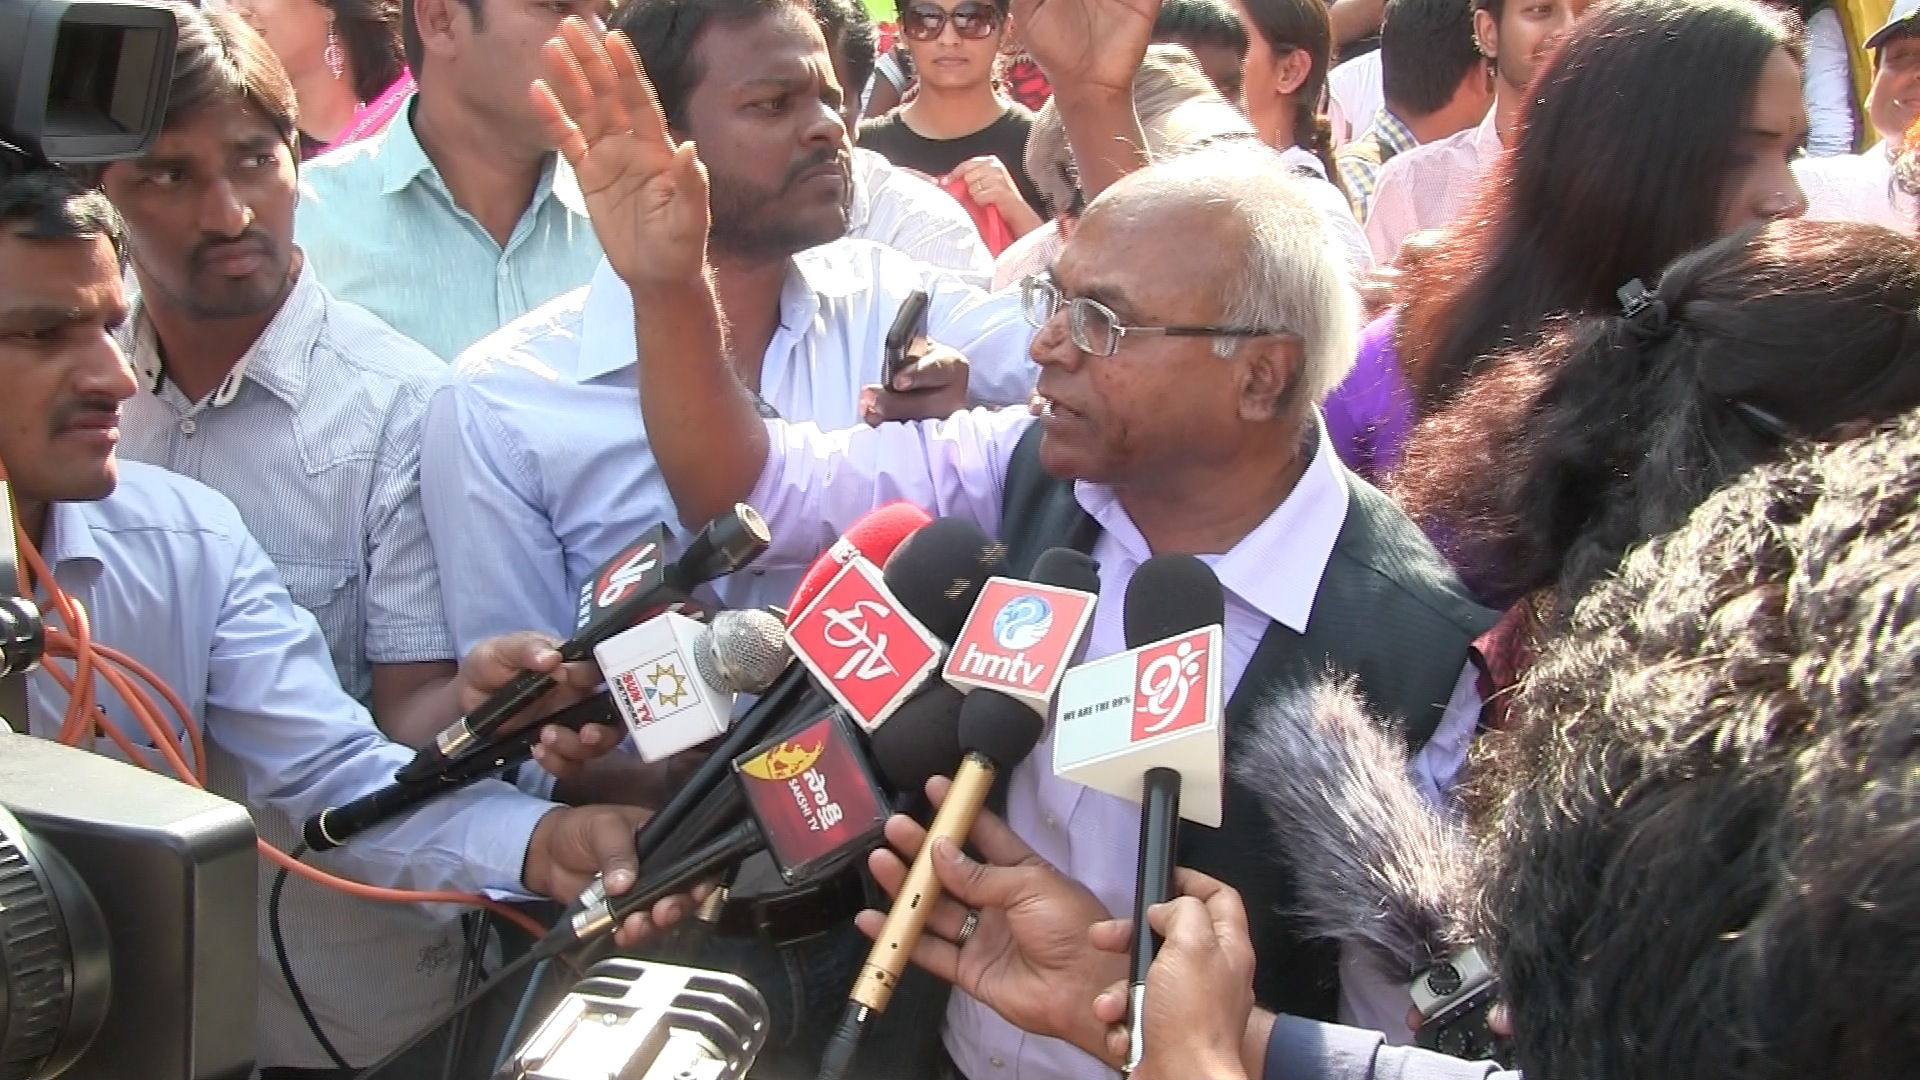 Kancha Ilaiah at Hyderabad Pride 2015